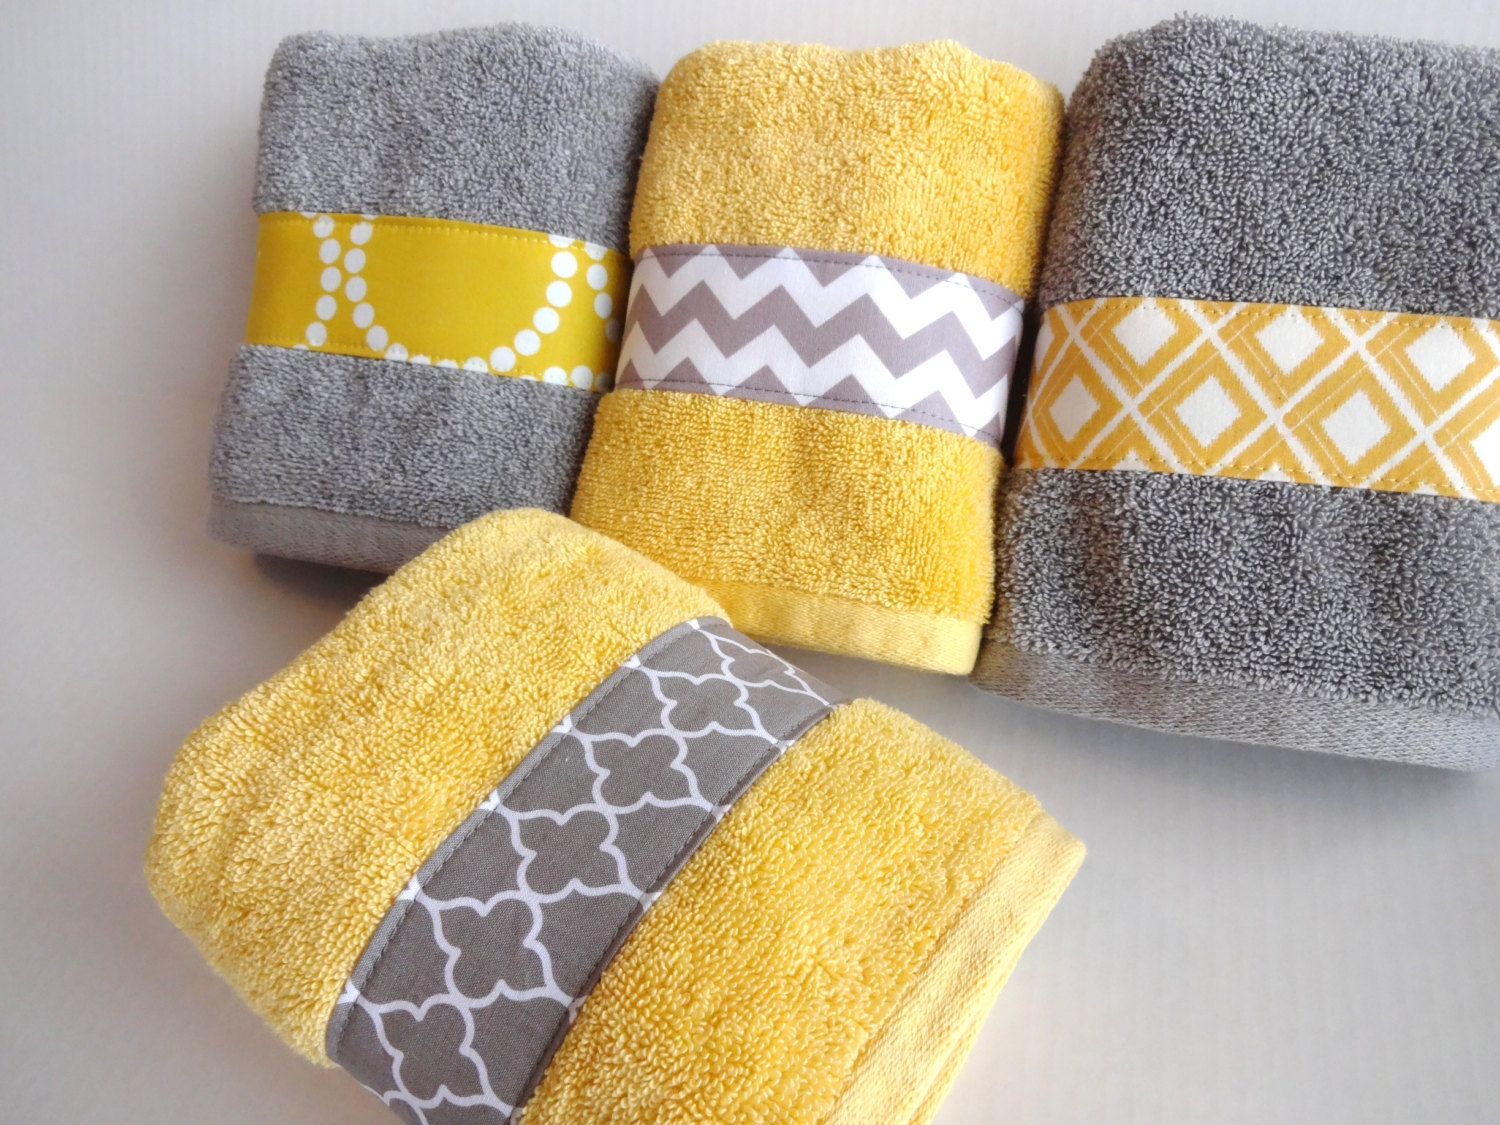 Grey Bath Rugs And Towels